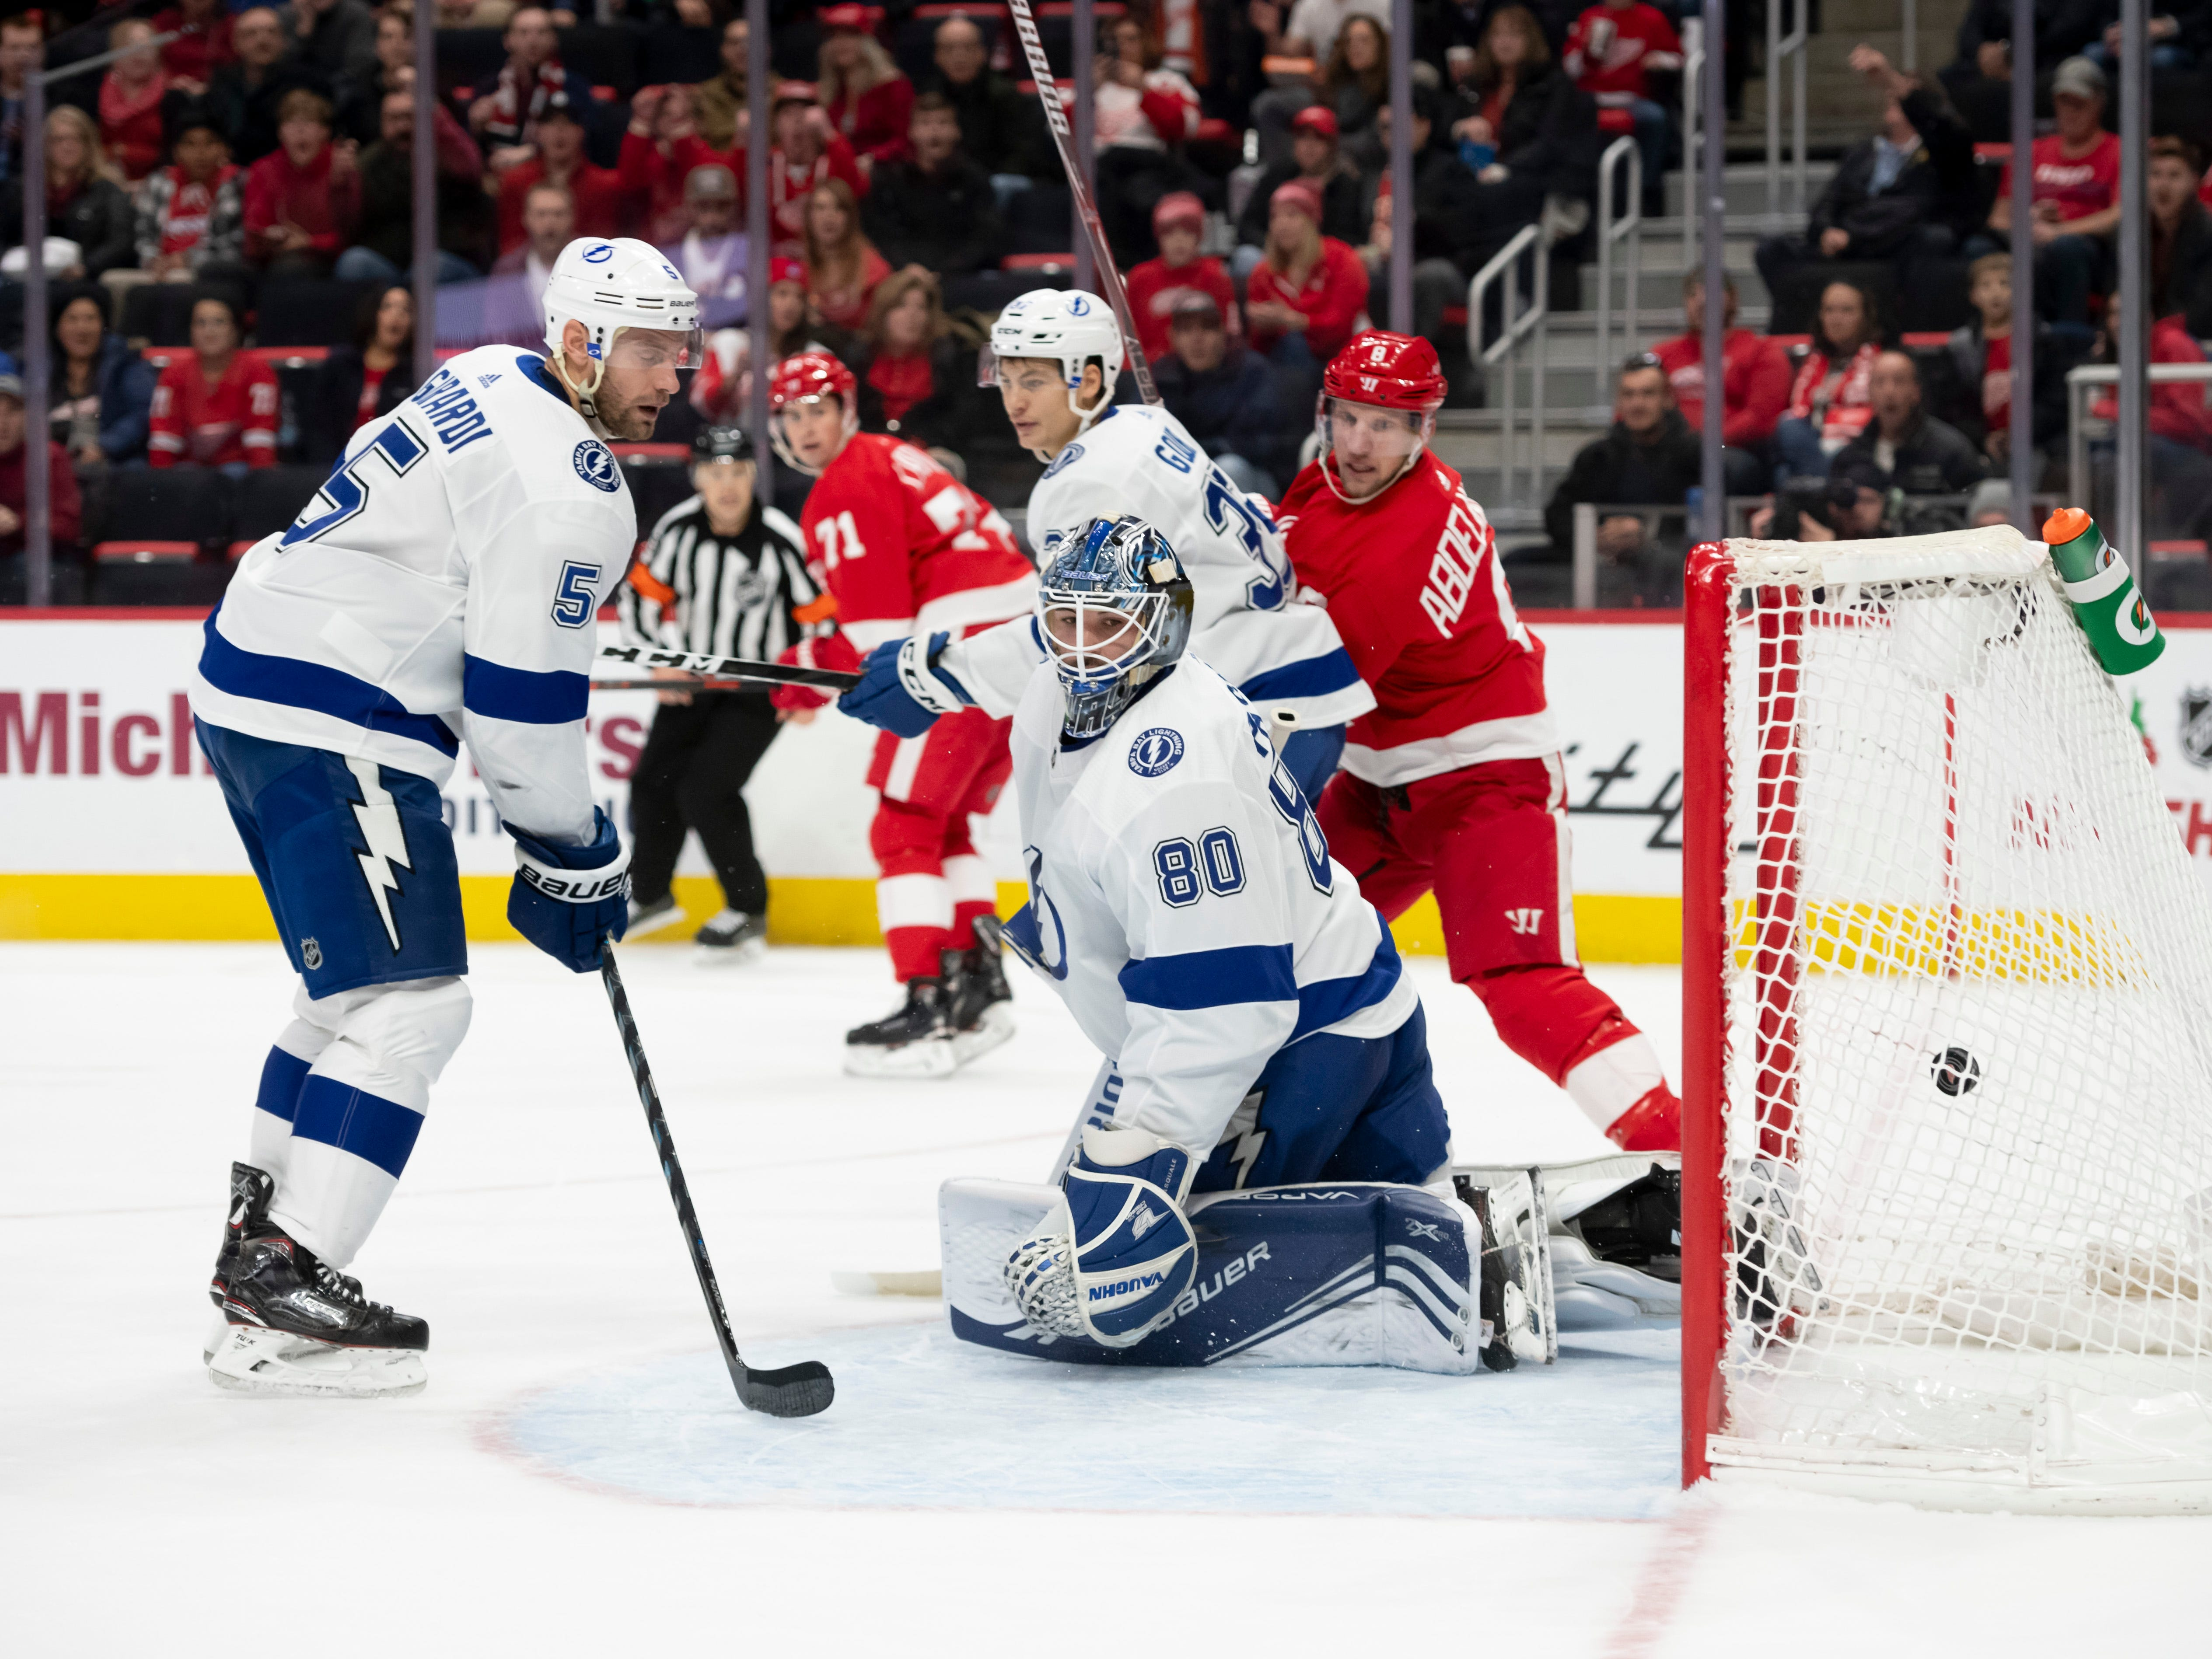 A goal by Detroit center Gustav Nyquist (not pictured) slips past Tampa Bay goaltender Edward Pasquale in the first period.